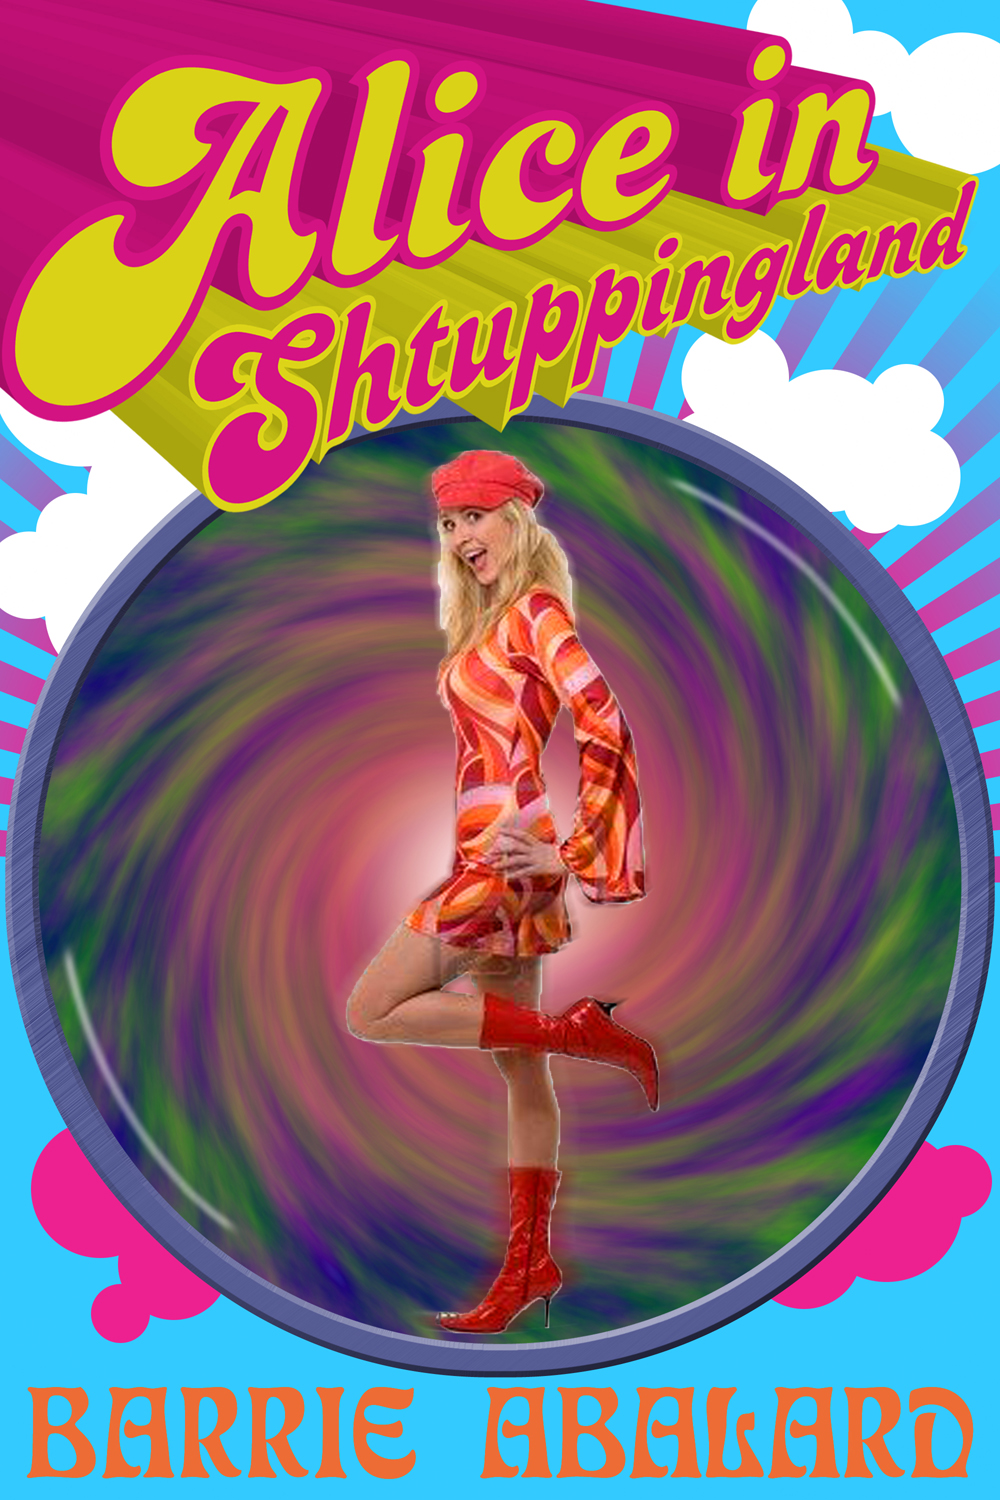 cover for Alice in Shtuppingland